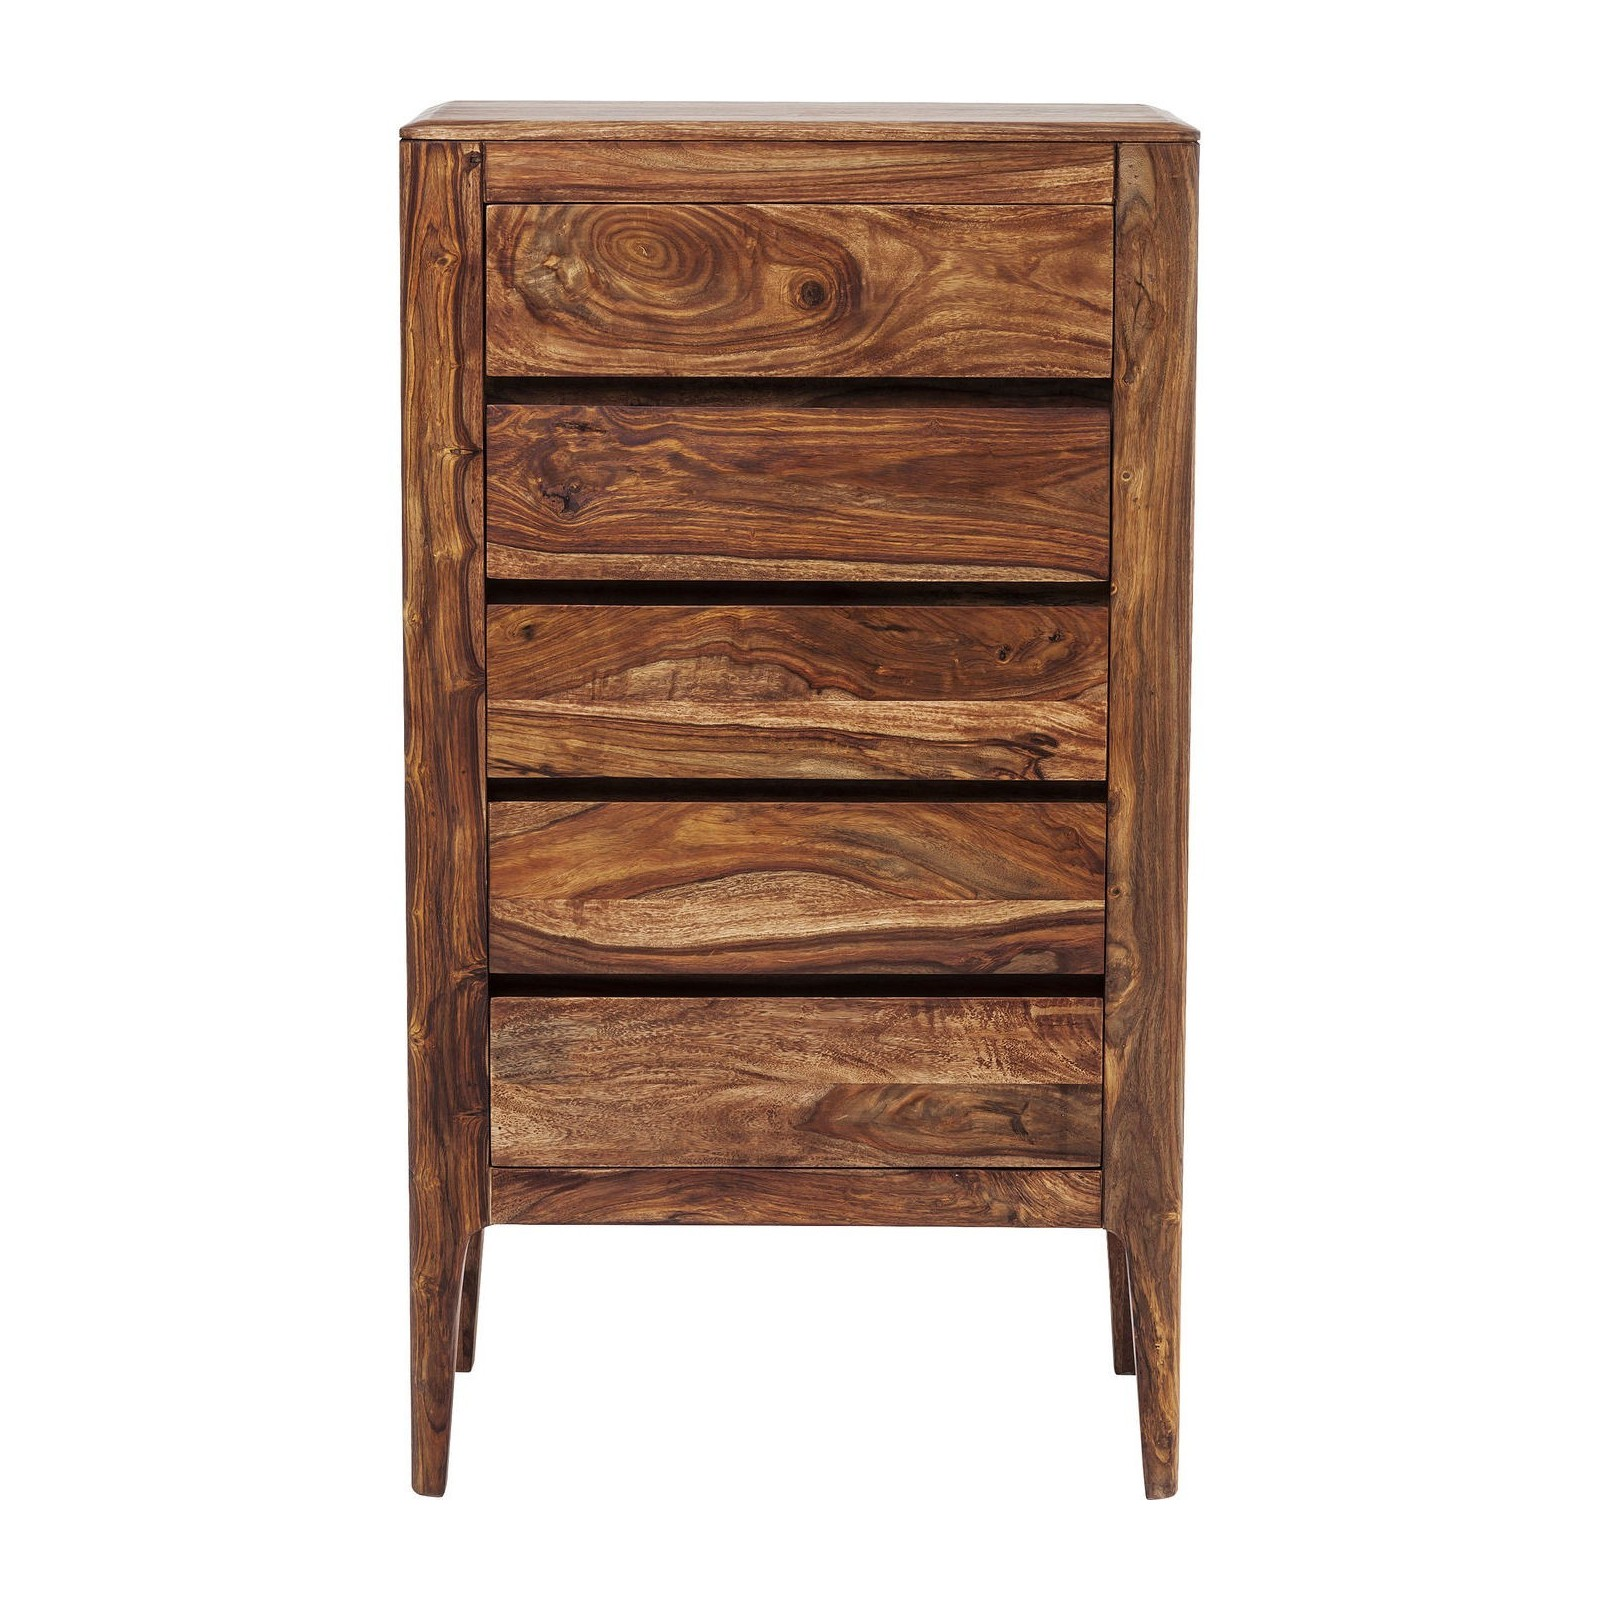 Table Basse Brooklyn Commode Haute Traditionnelle En Bois - Brooklyn - Kare Design